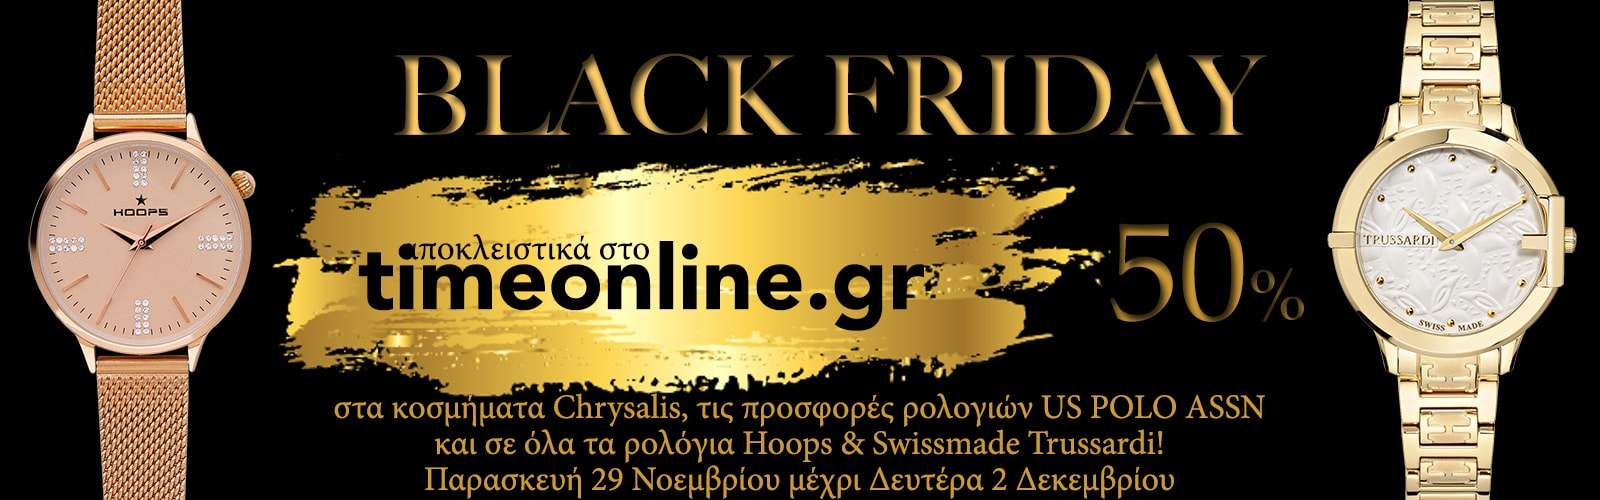 black friday timeonline